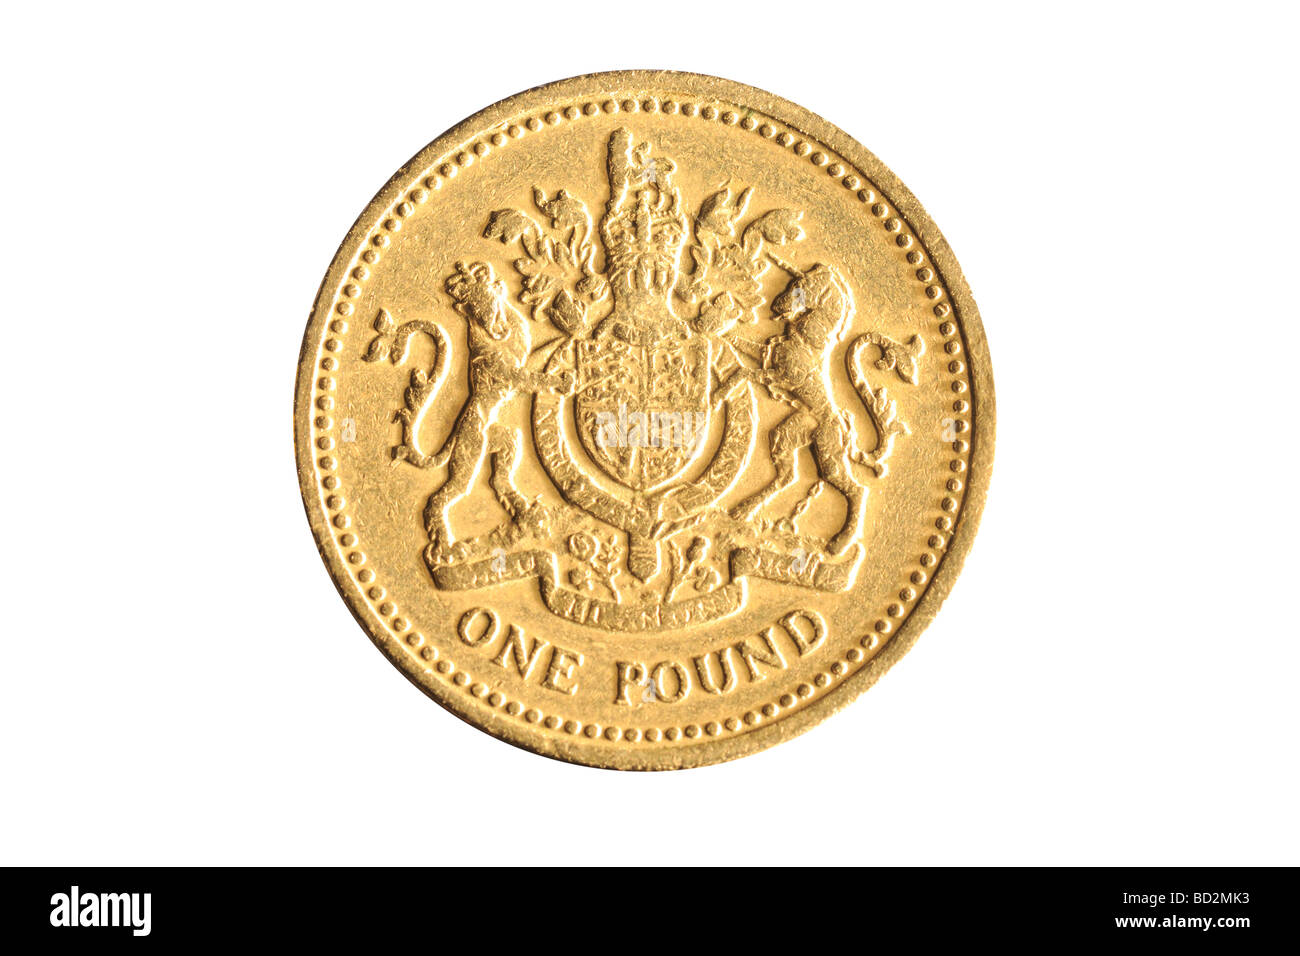 one pound coin - Stock Image